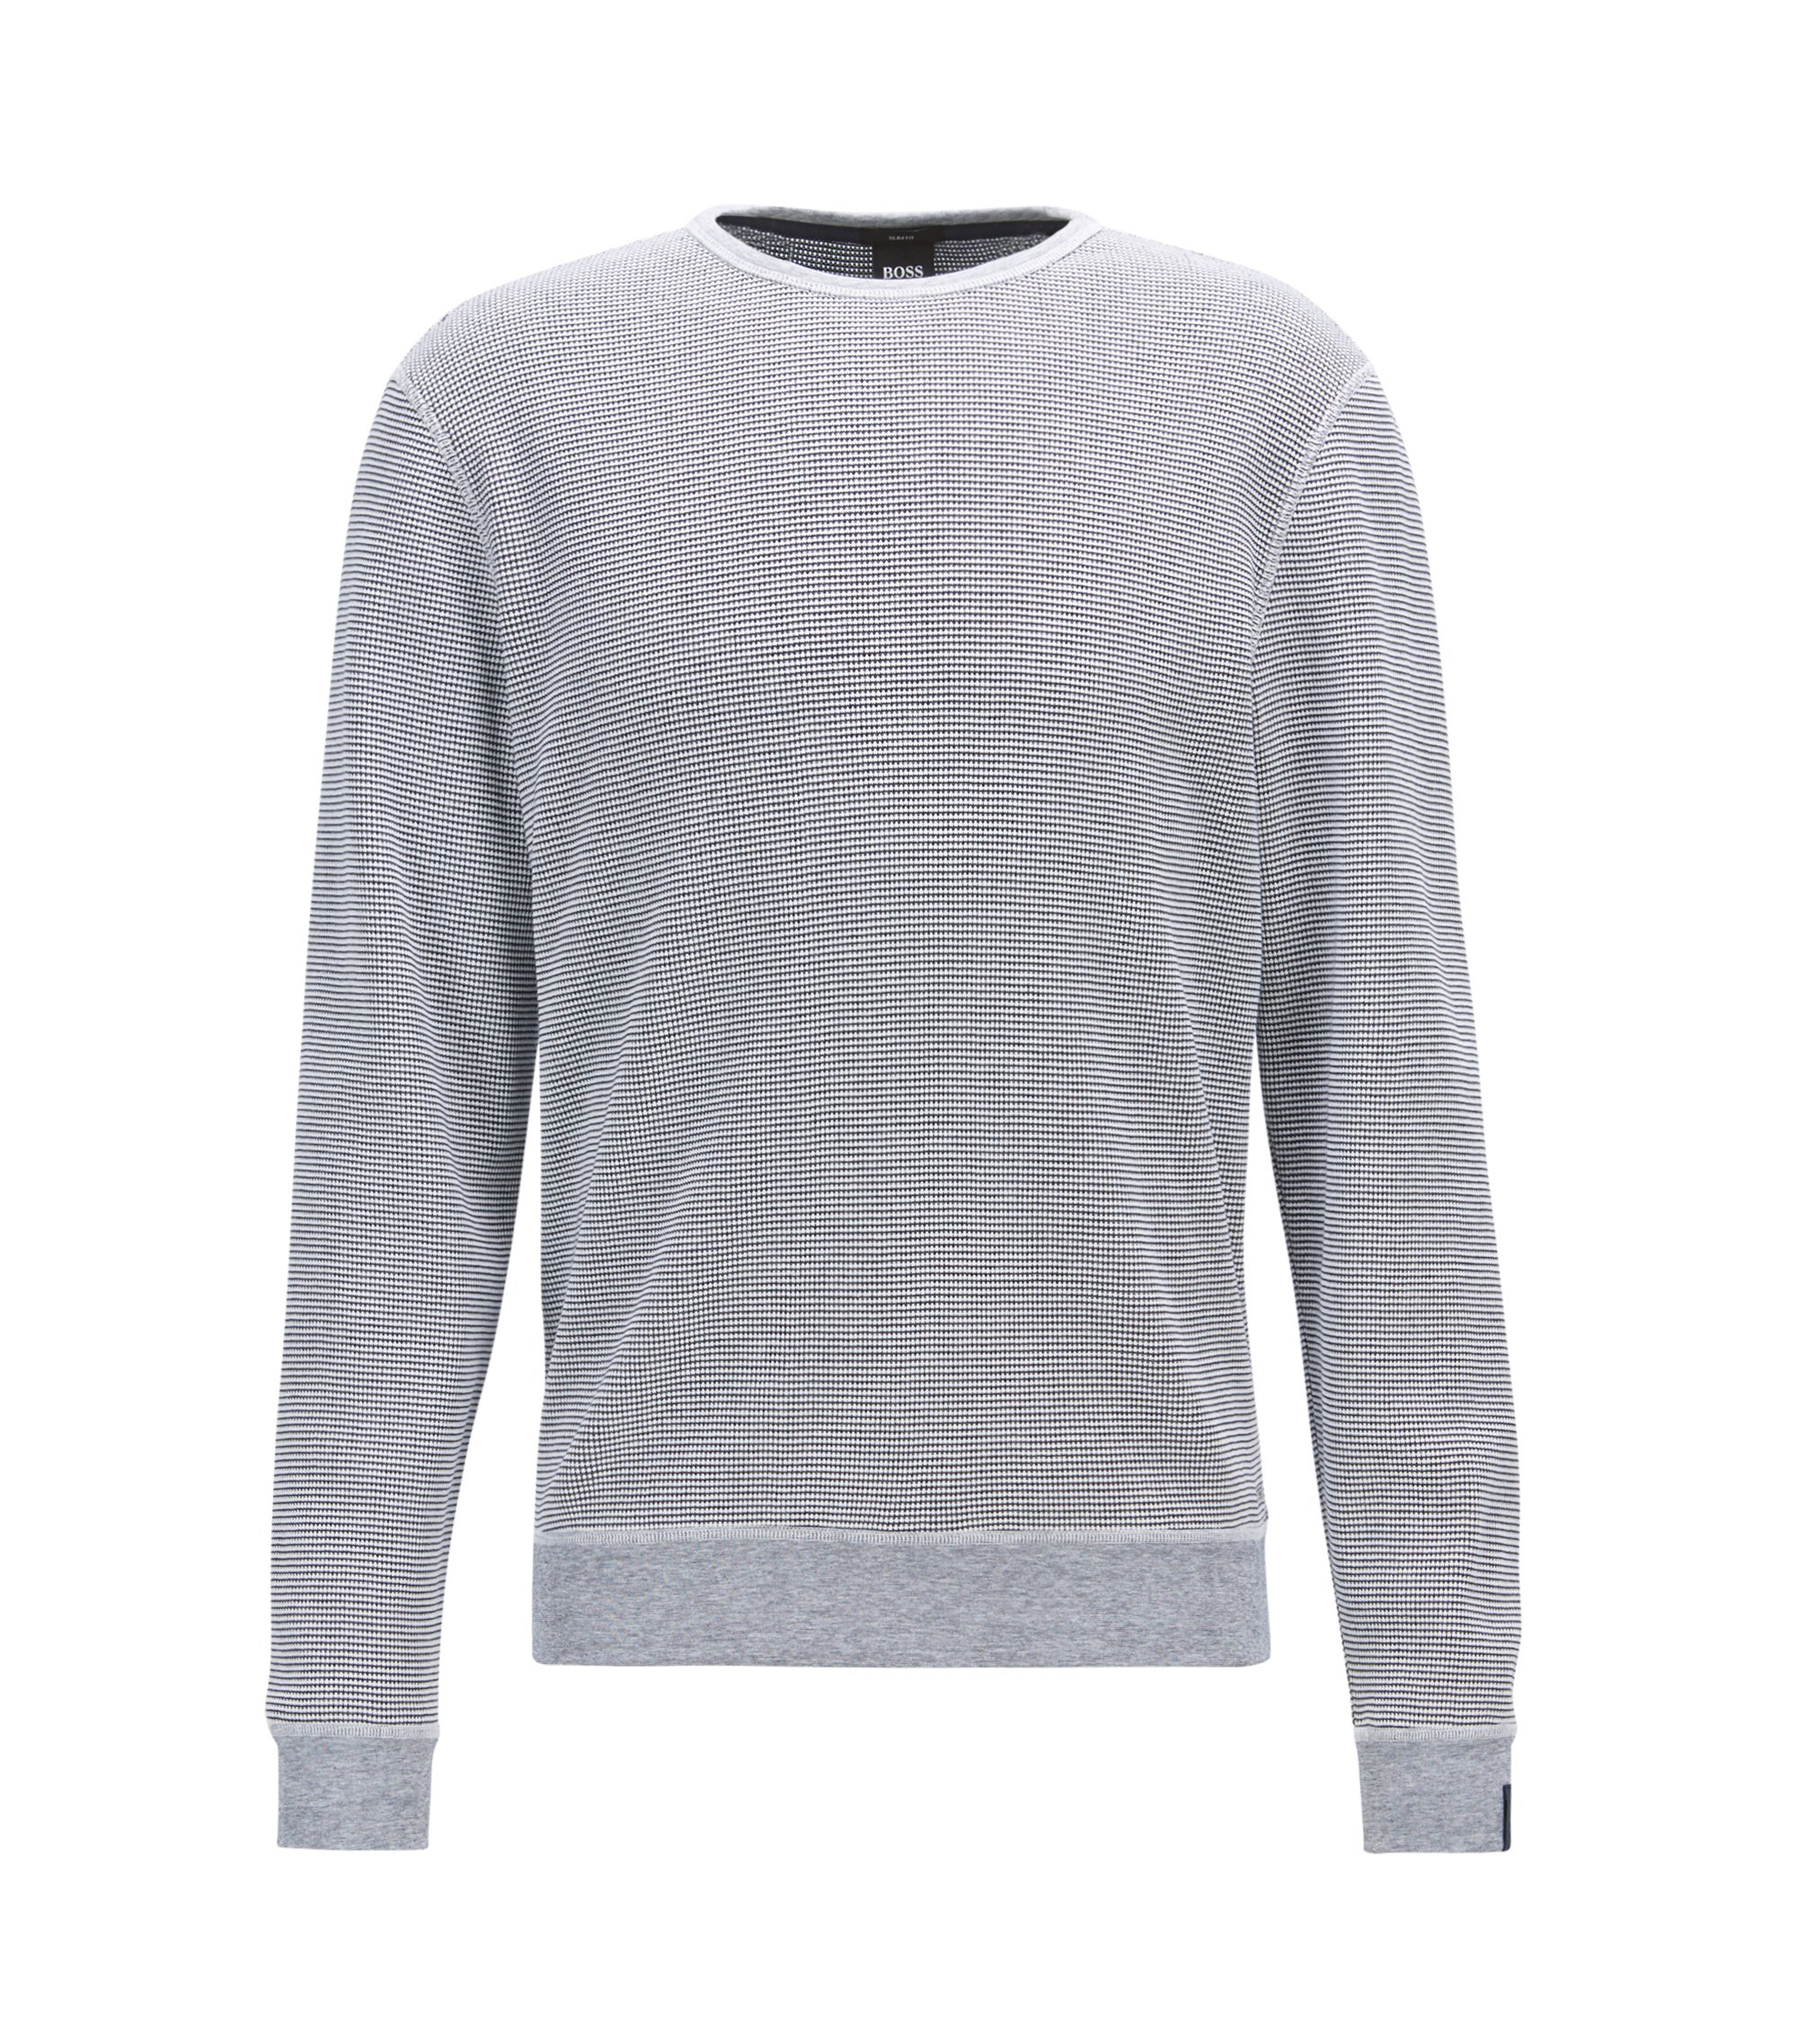 Cotton Knit Sweatshirt | Skubic, Dark Blue